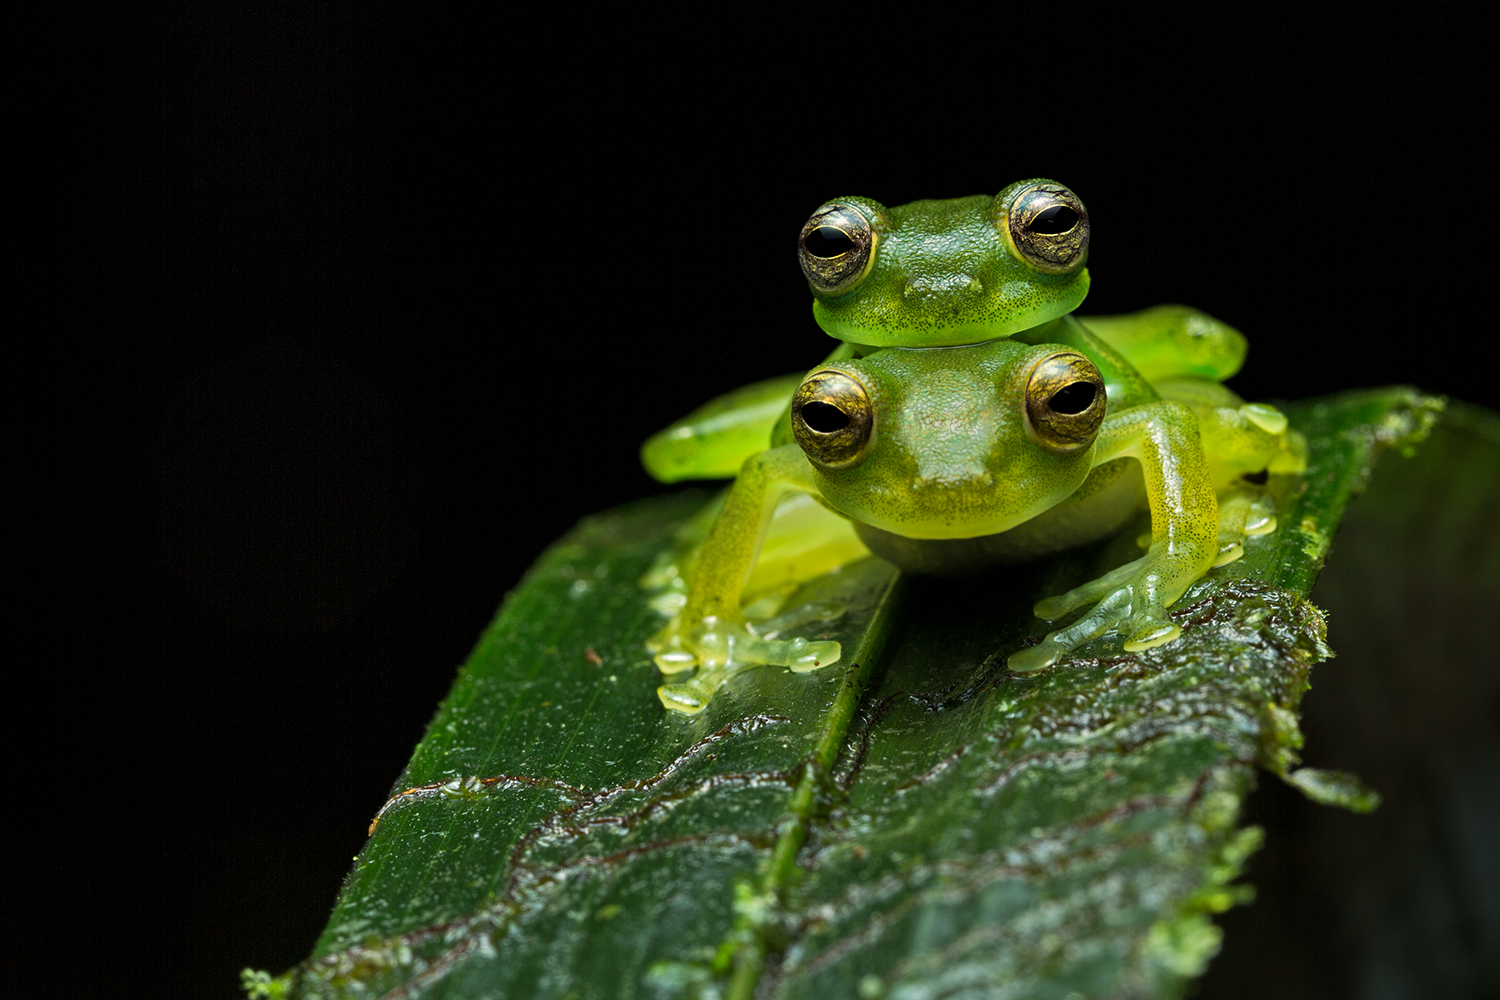 Emerald glass frogs photographed by Moira in South America.